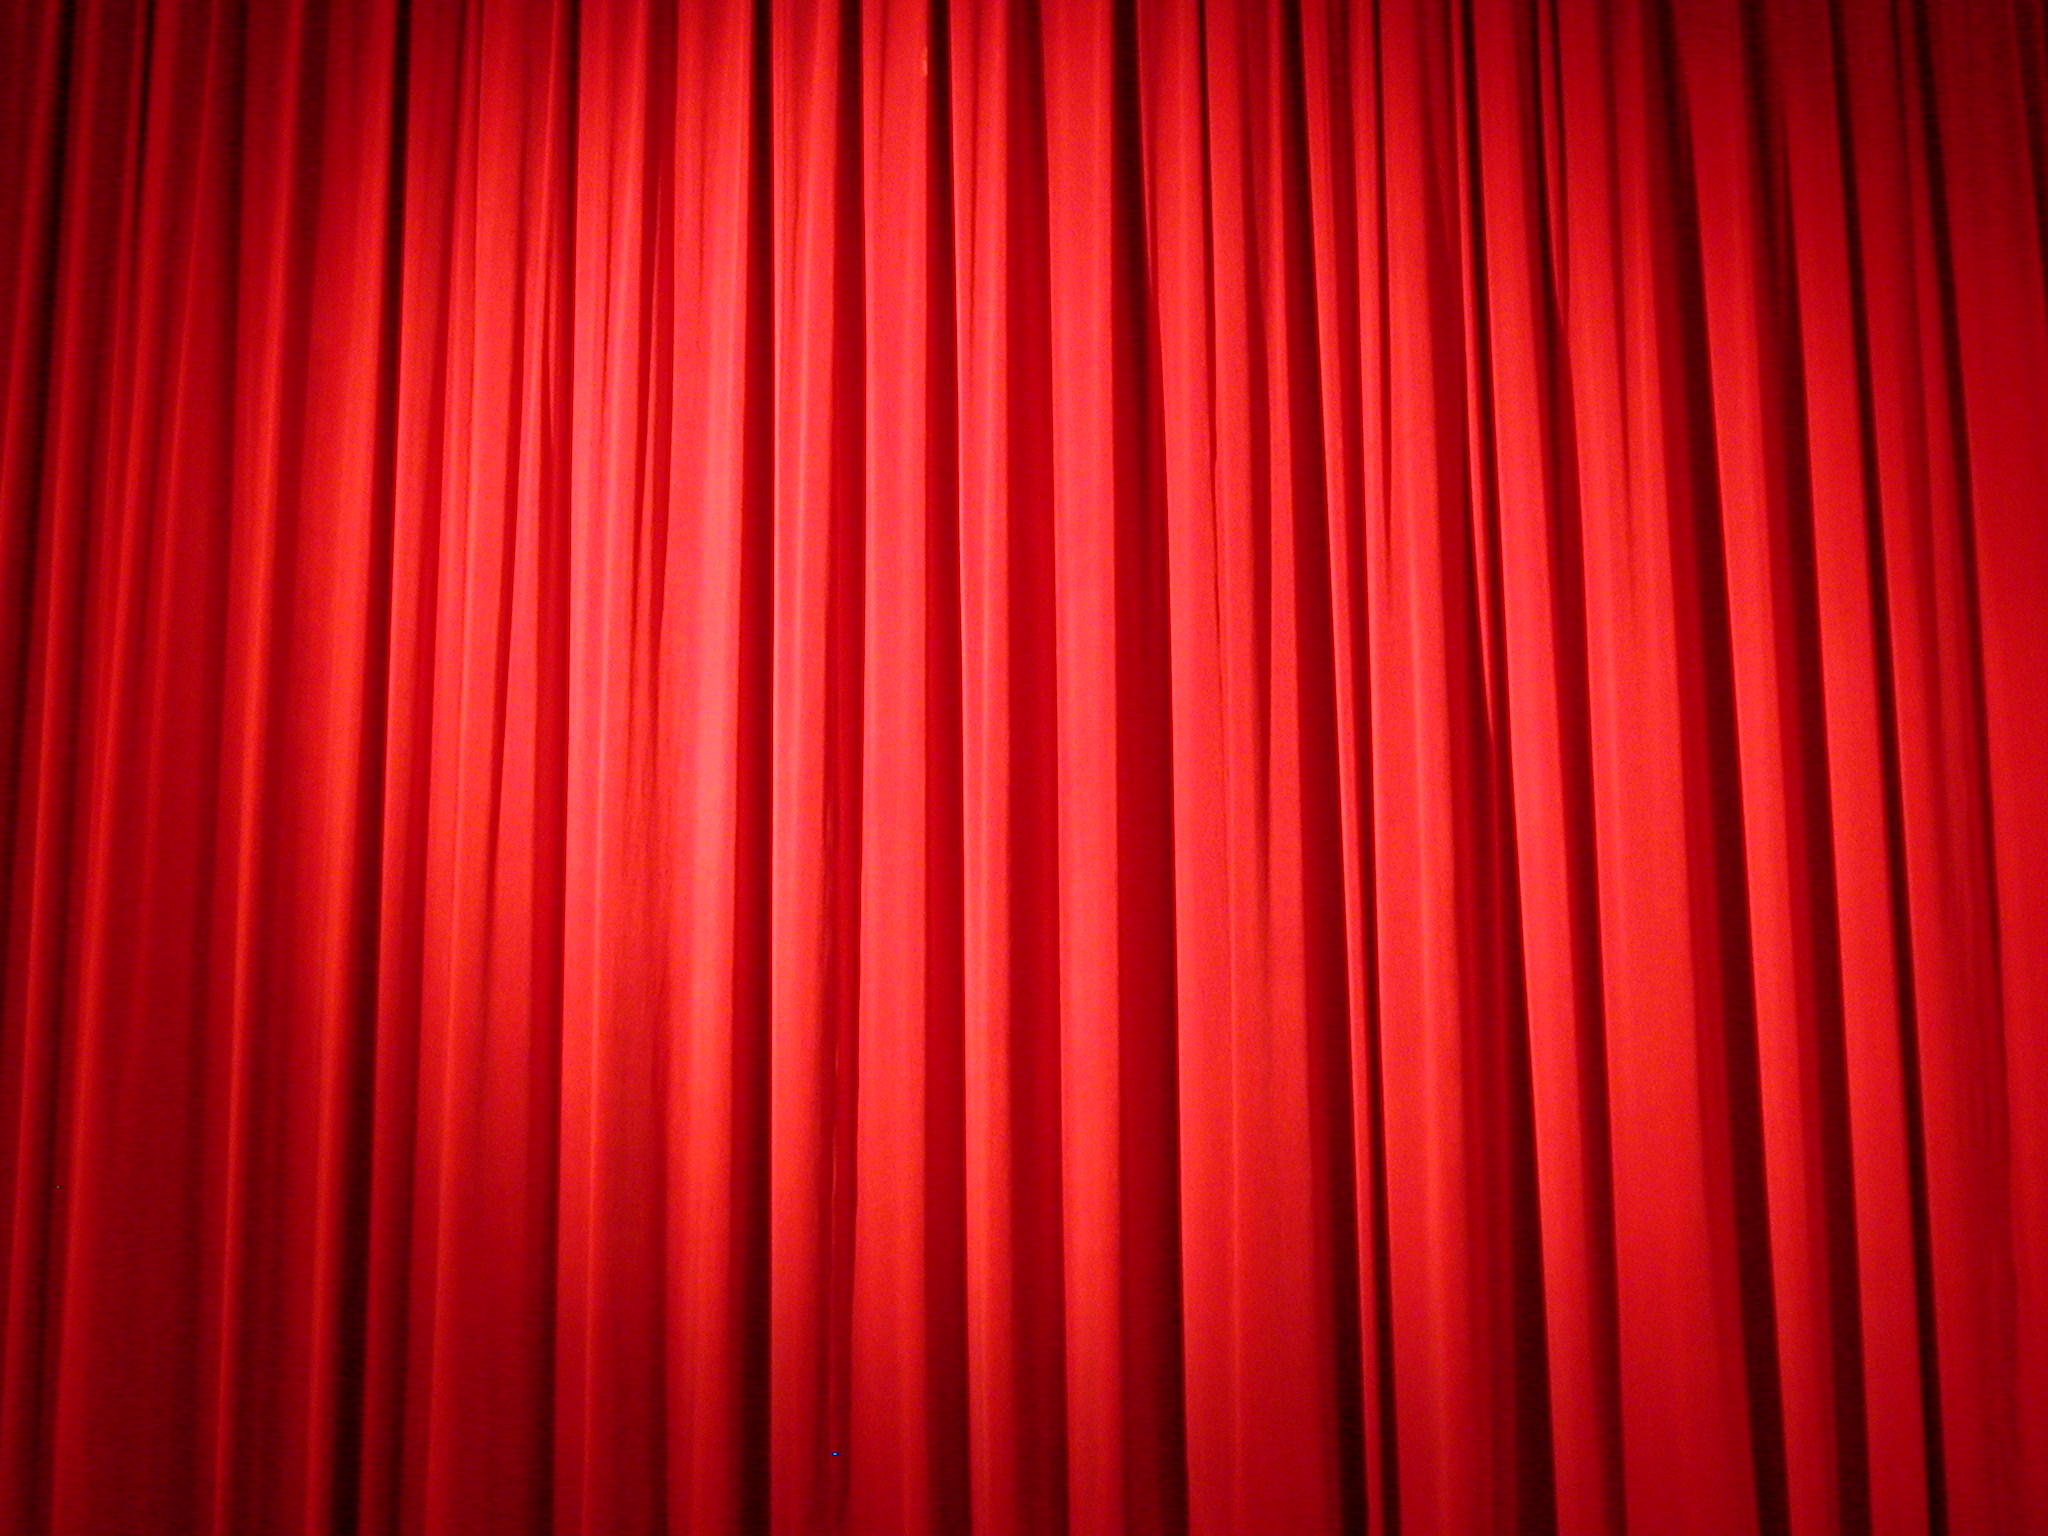 red curtains stage acting show spotlight